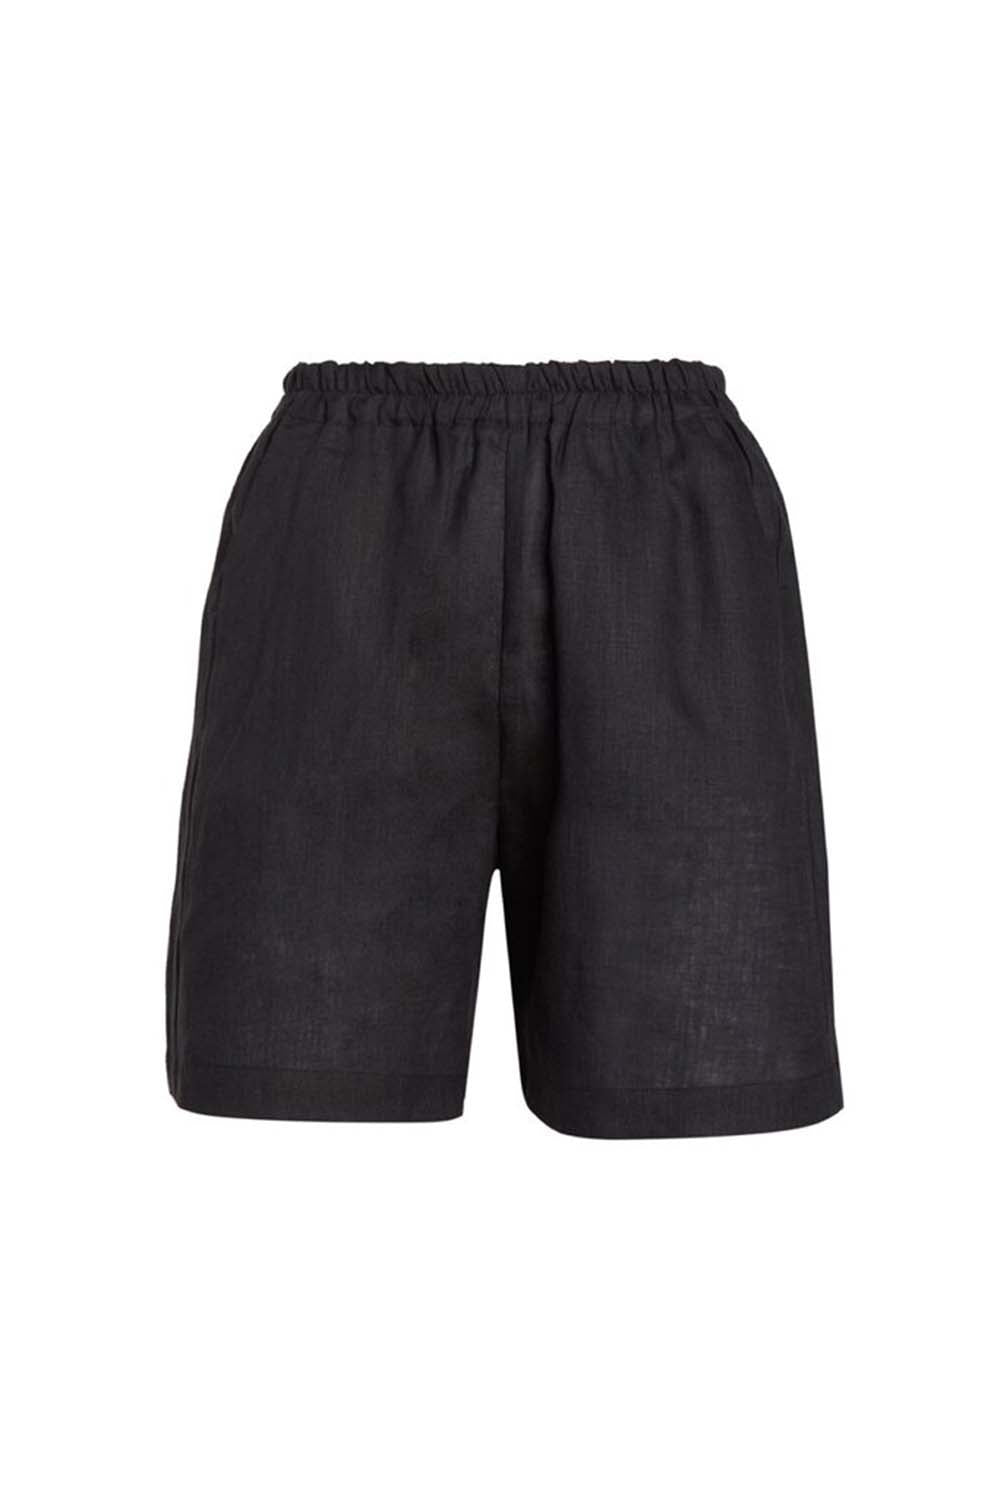 Studio Short Black